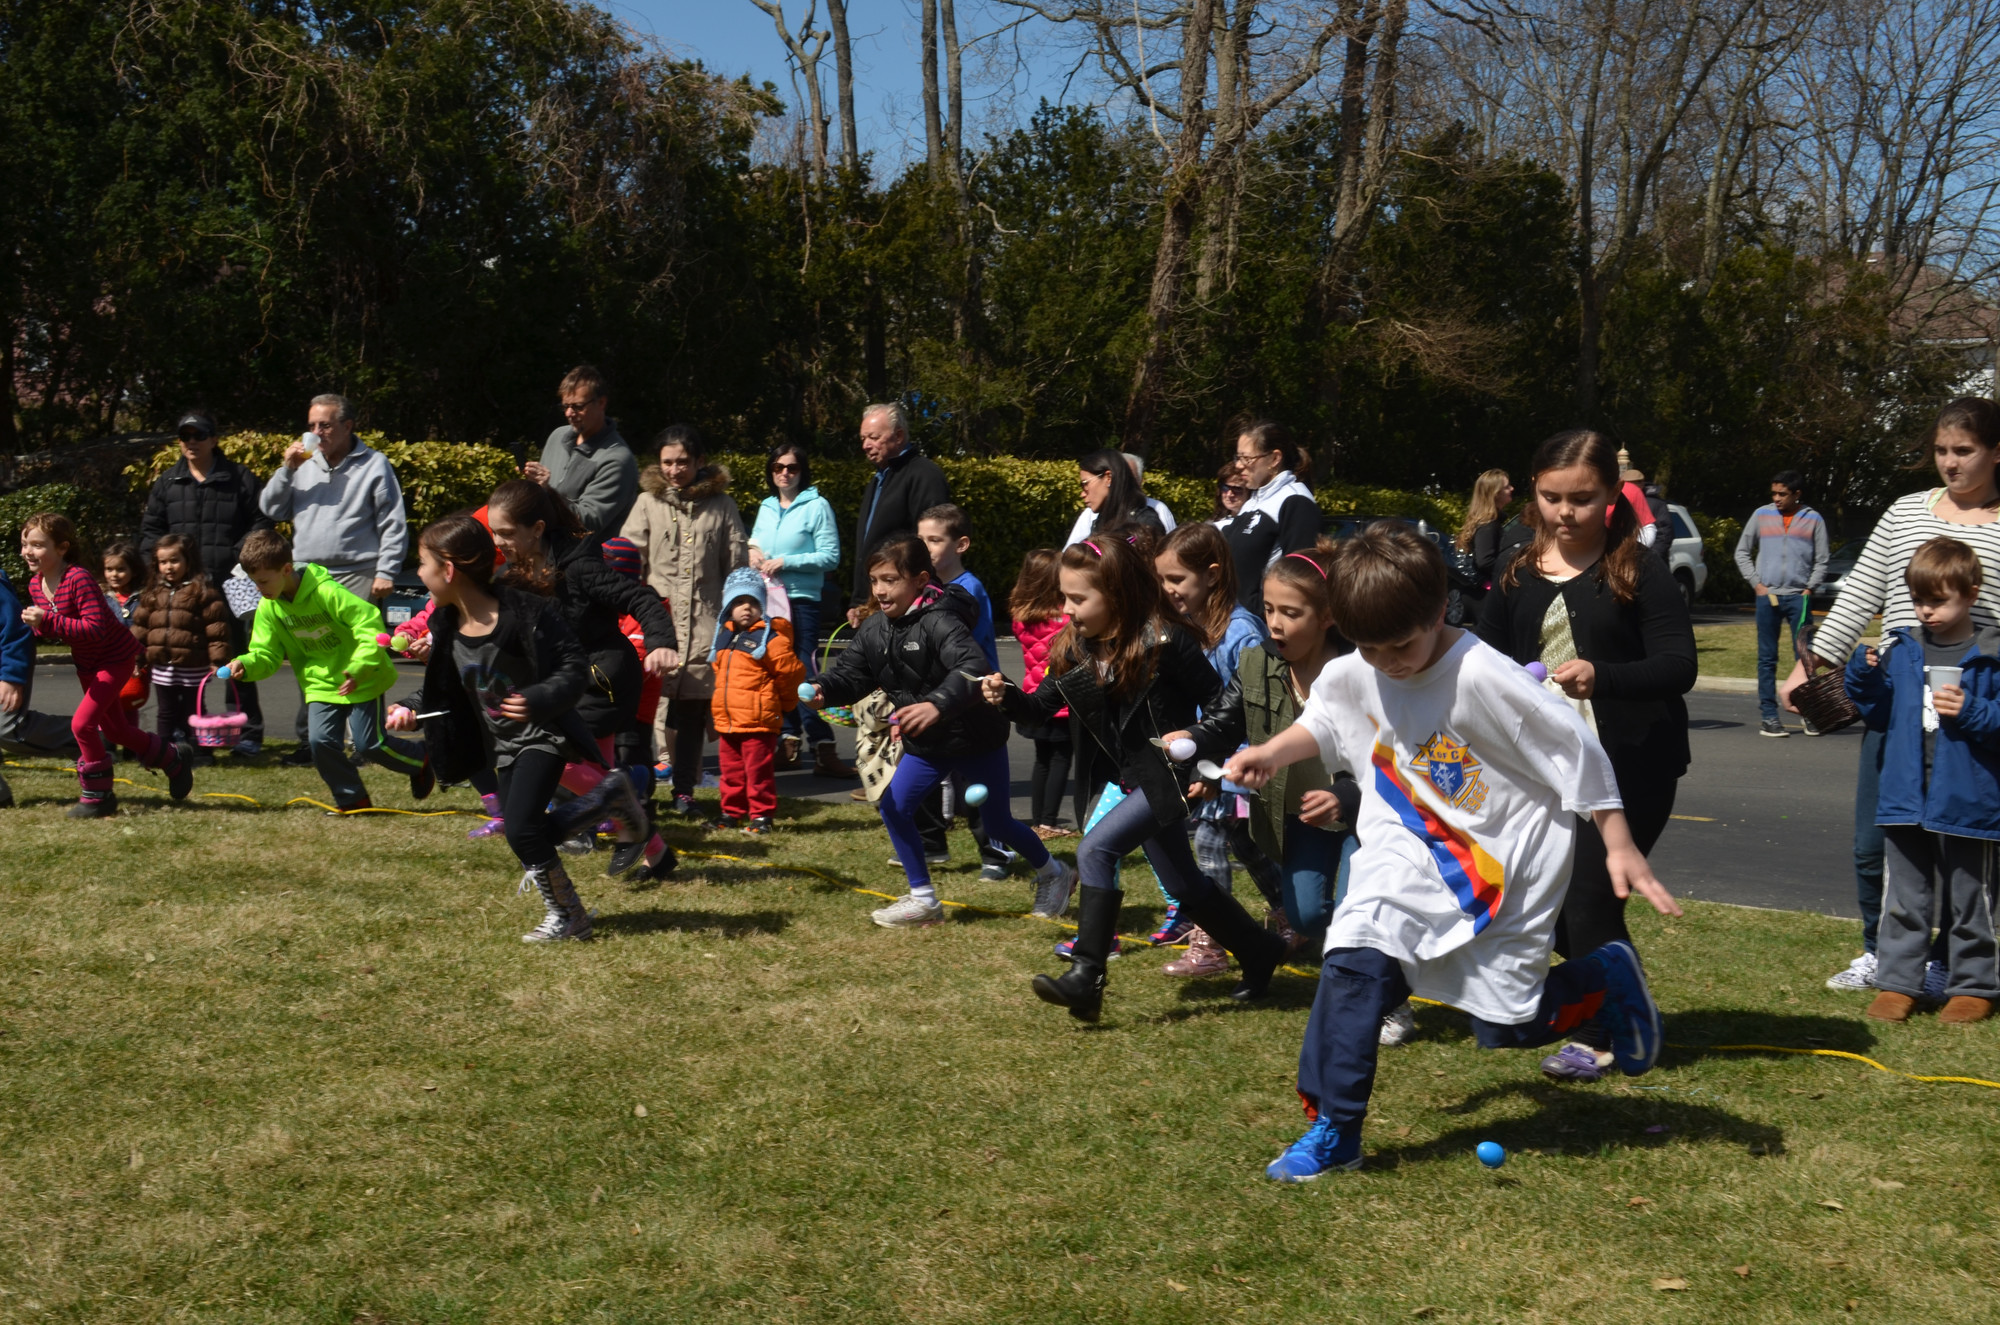 The Father John Farrell Council 5962 Knights of Columbus held their annual Easter Egg Roll at St. Joseph's R.C. Church in Hewlett, where the children competed in egg on a spoon races.